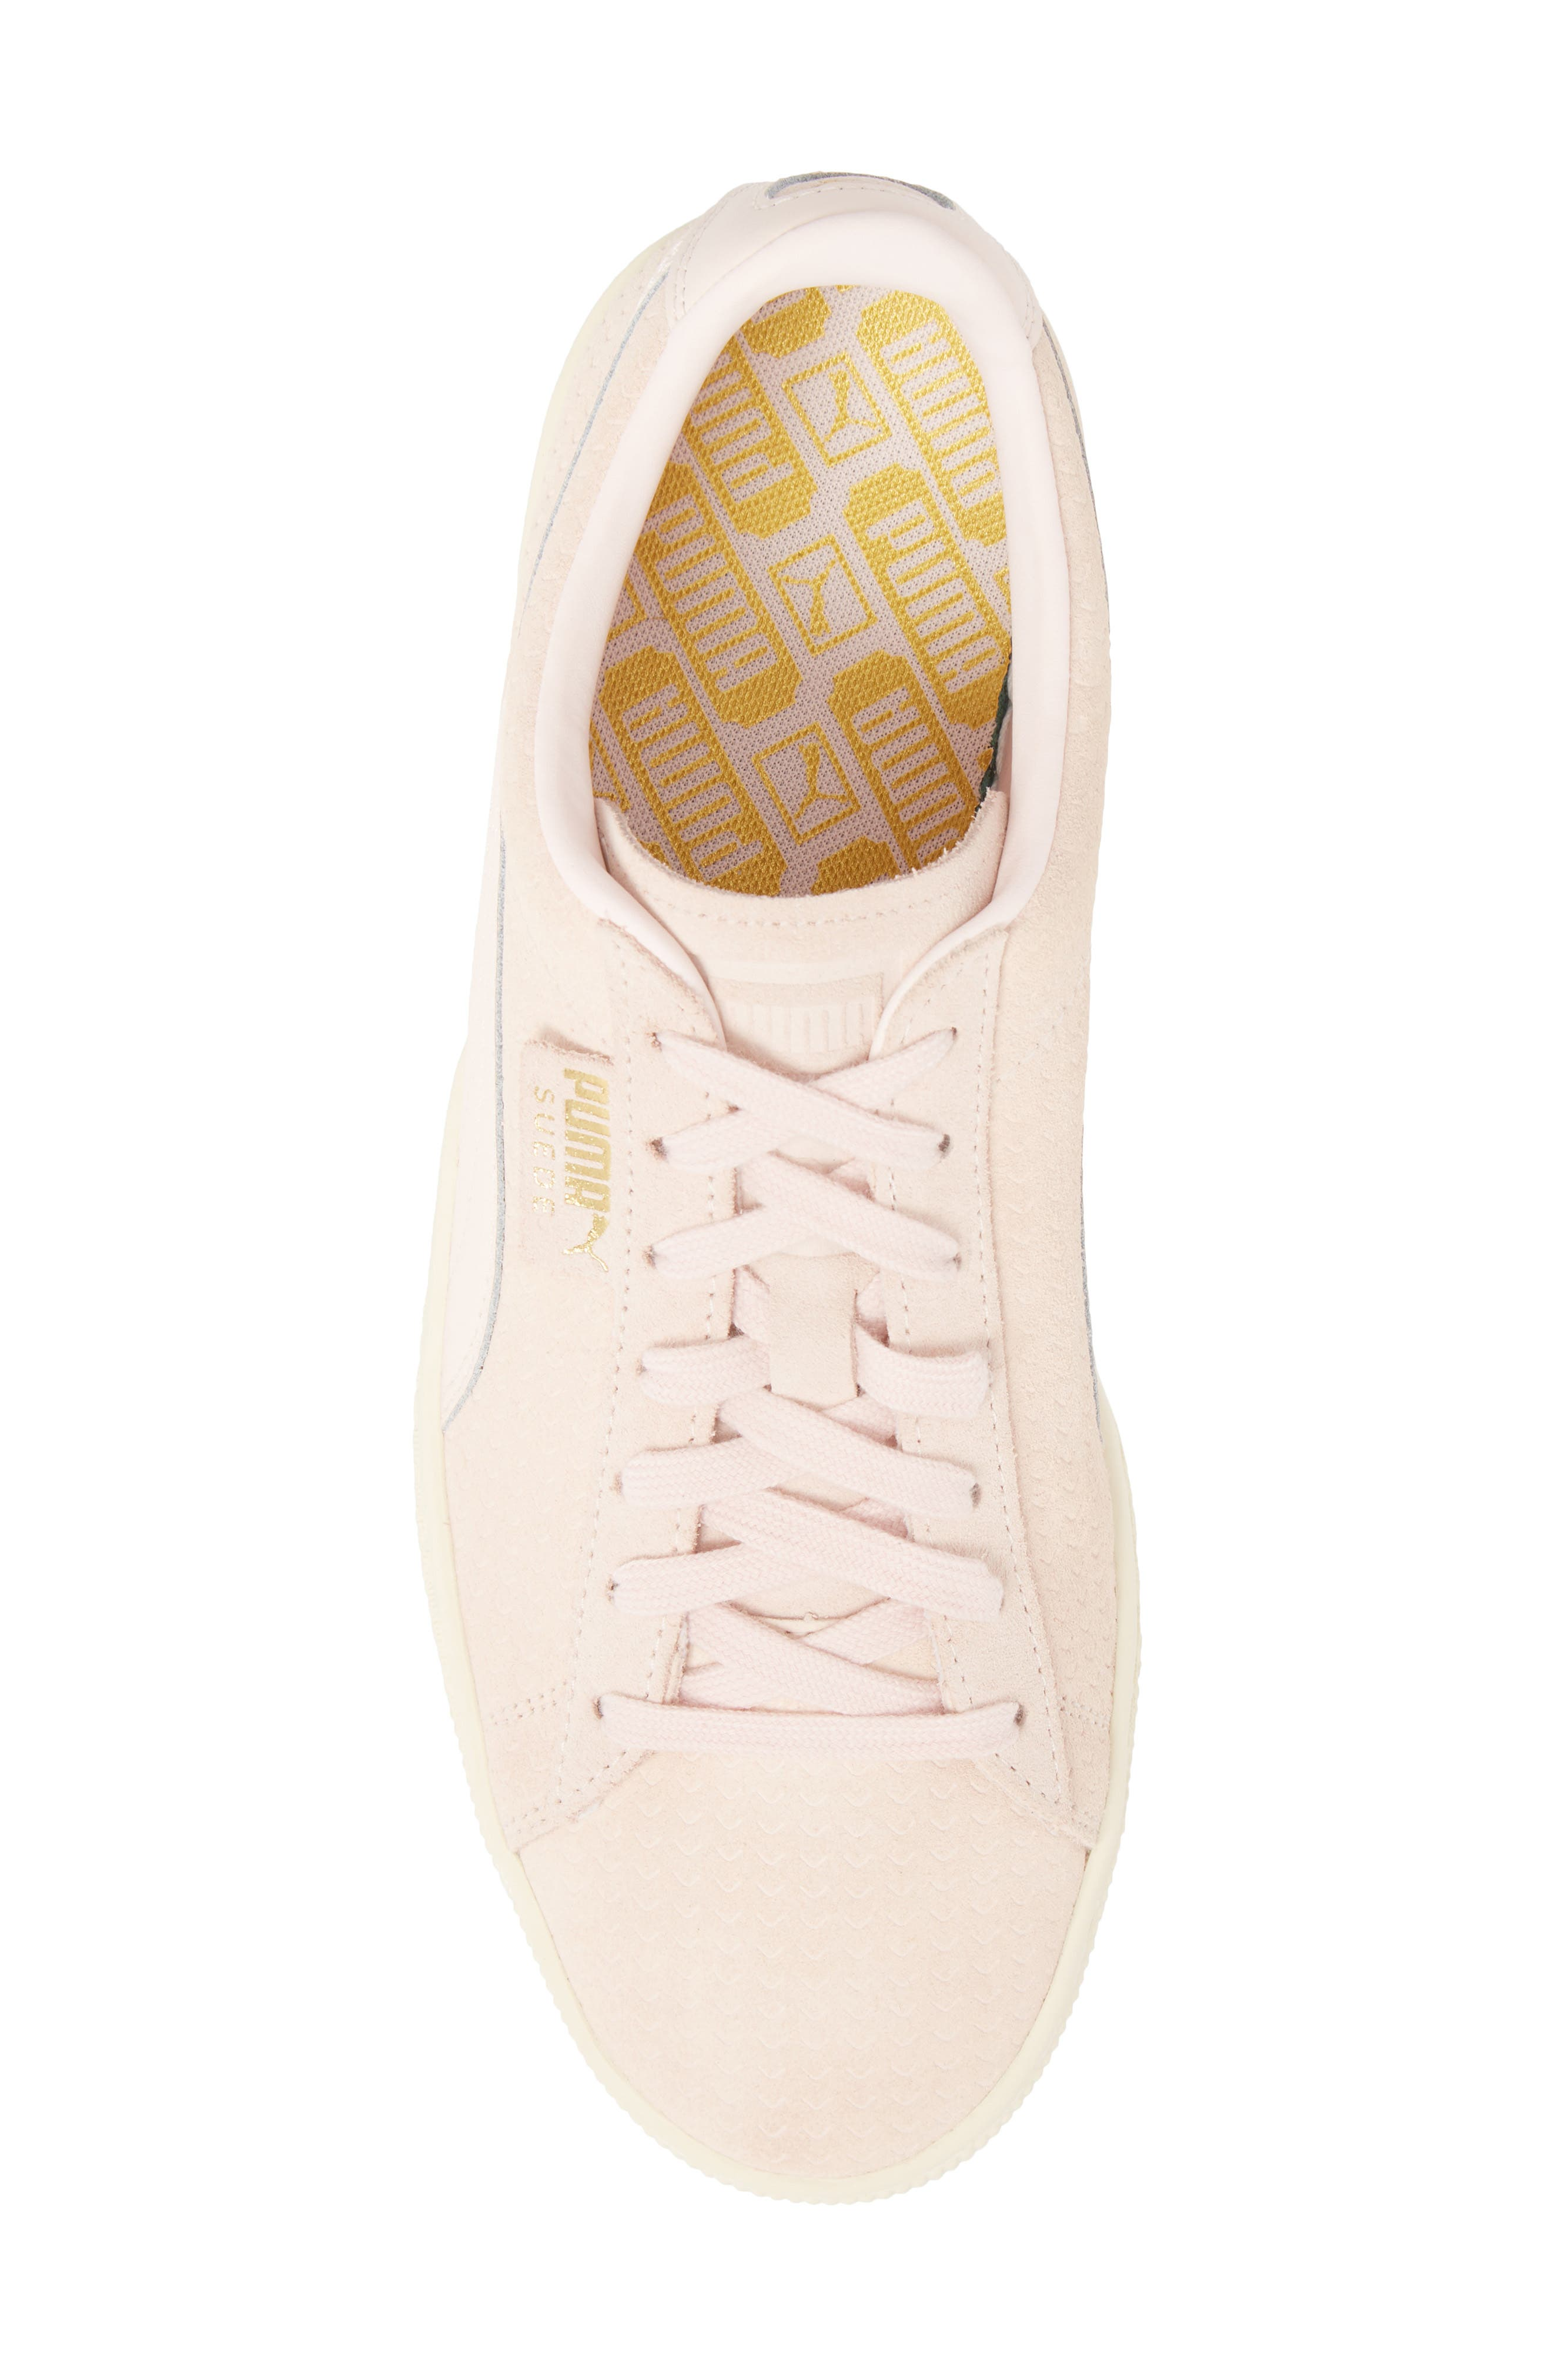 Suede Classic Perforation Sneaker,                             Alternate thumbnail 5, color,                             Pearl/ Whisper White Suede